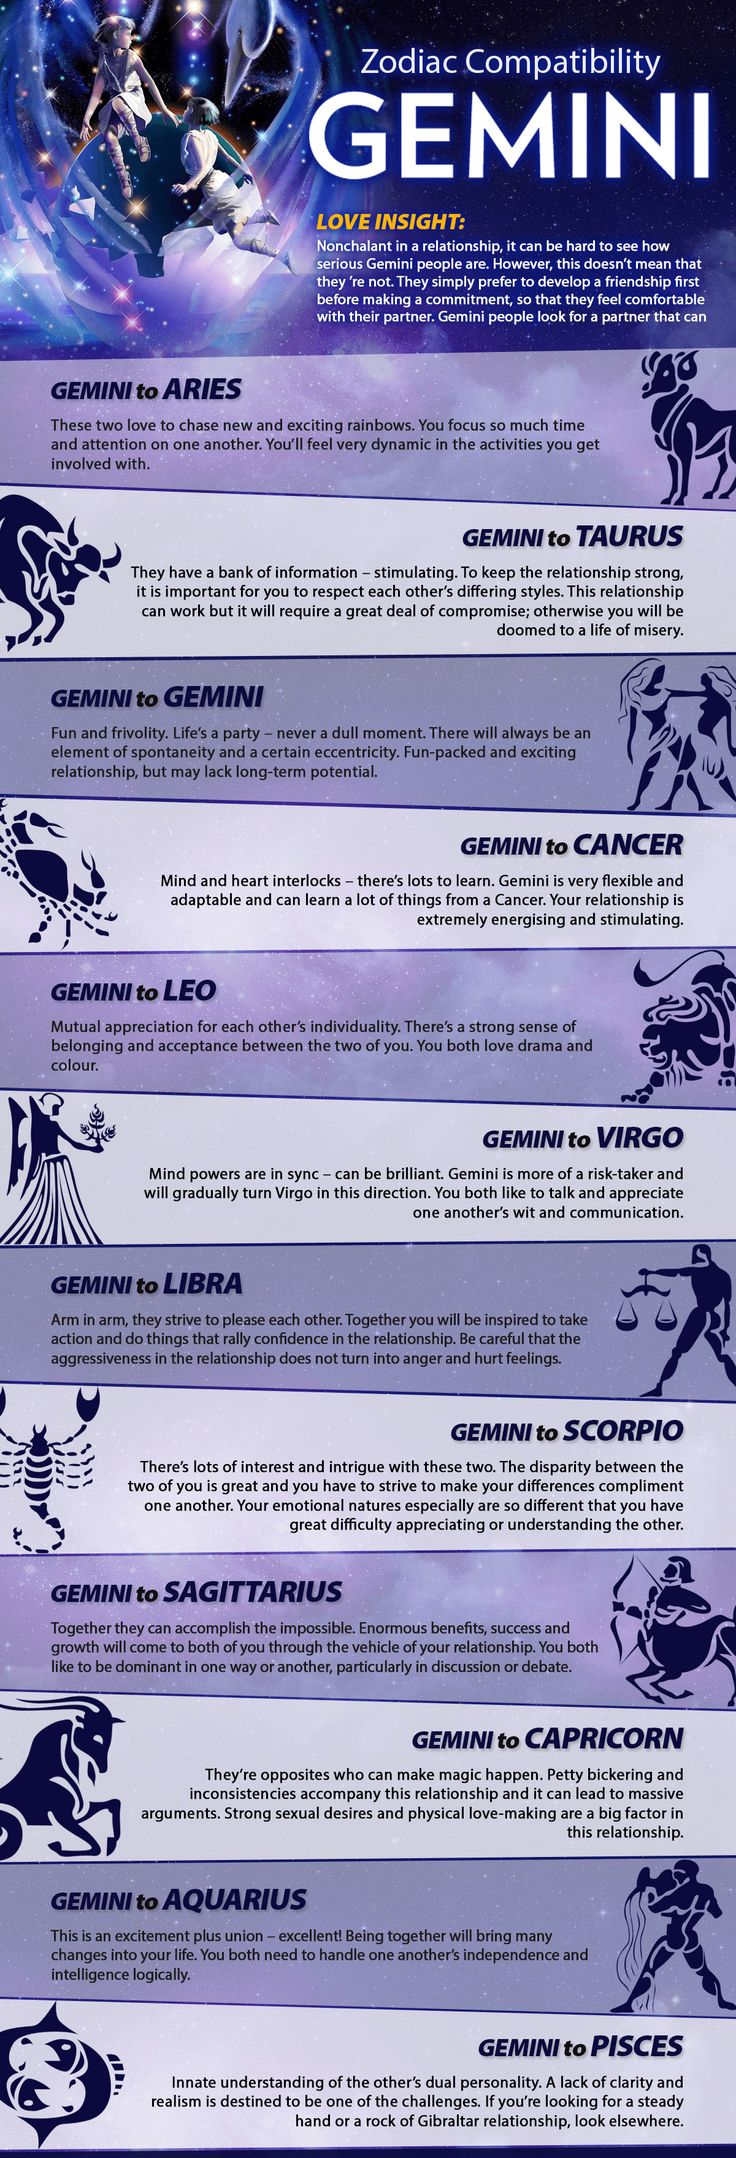 Best 25 gemini and leo ideas on pinterest leo astrology signs gemini compatibility chart for love communication explore our relationships guide to find best astrology match for zodiac sign nvjuhfo Gallery